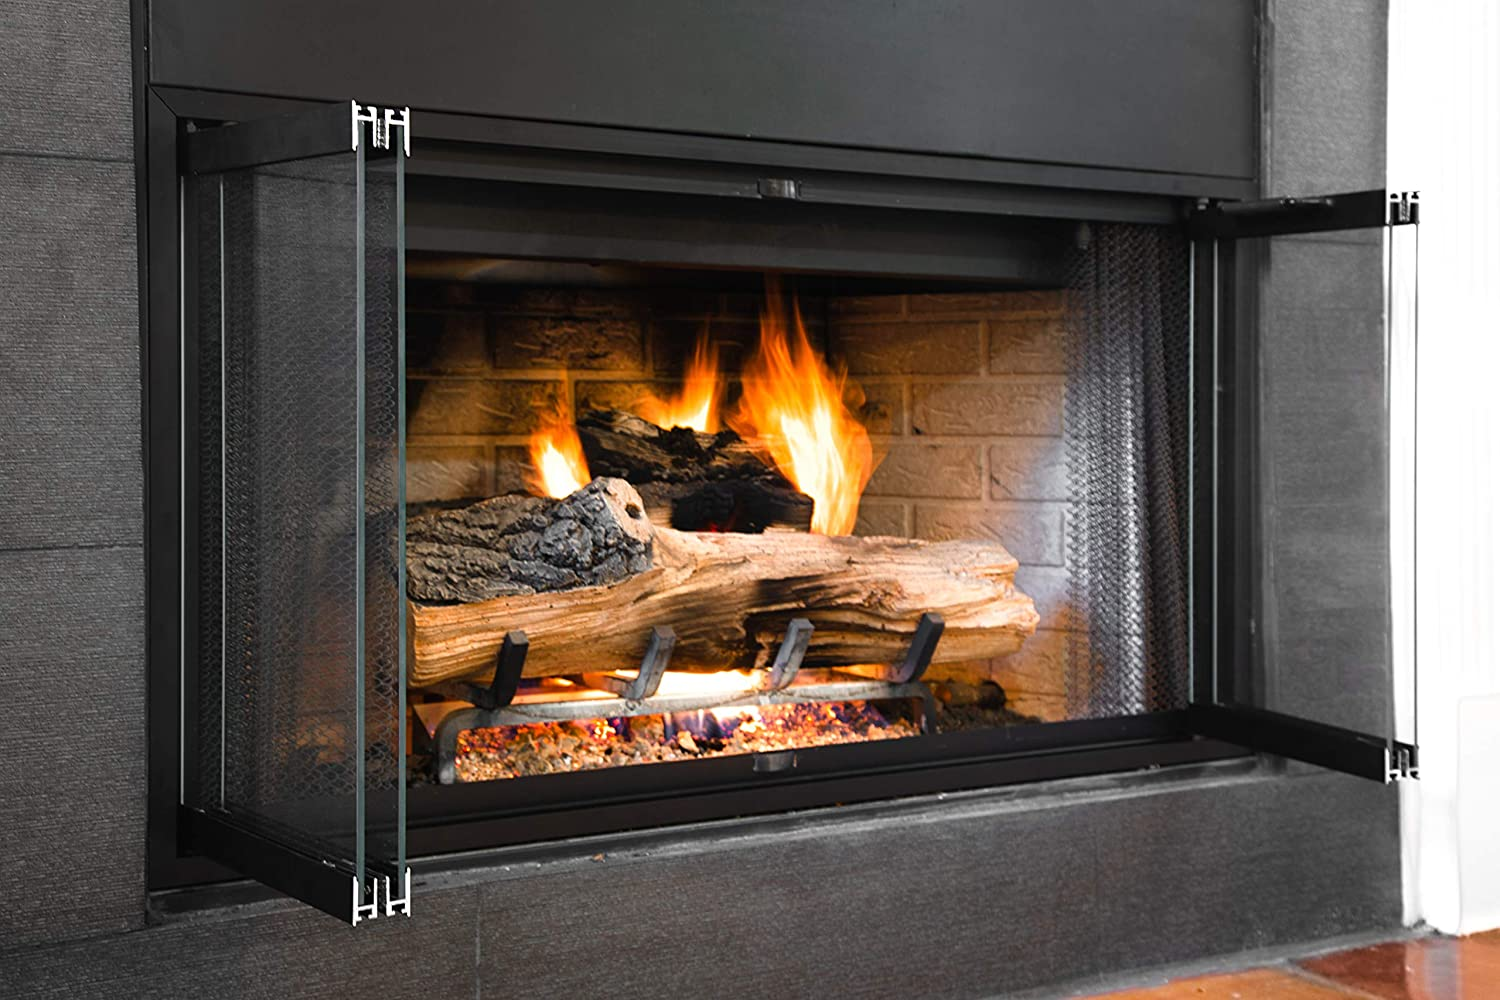 Amazon.com: Superior-Lennox Prefab Fireplace Door | Easy to Install | Frame  Included | Stop Annoying Drafts: Home & Kitchen